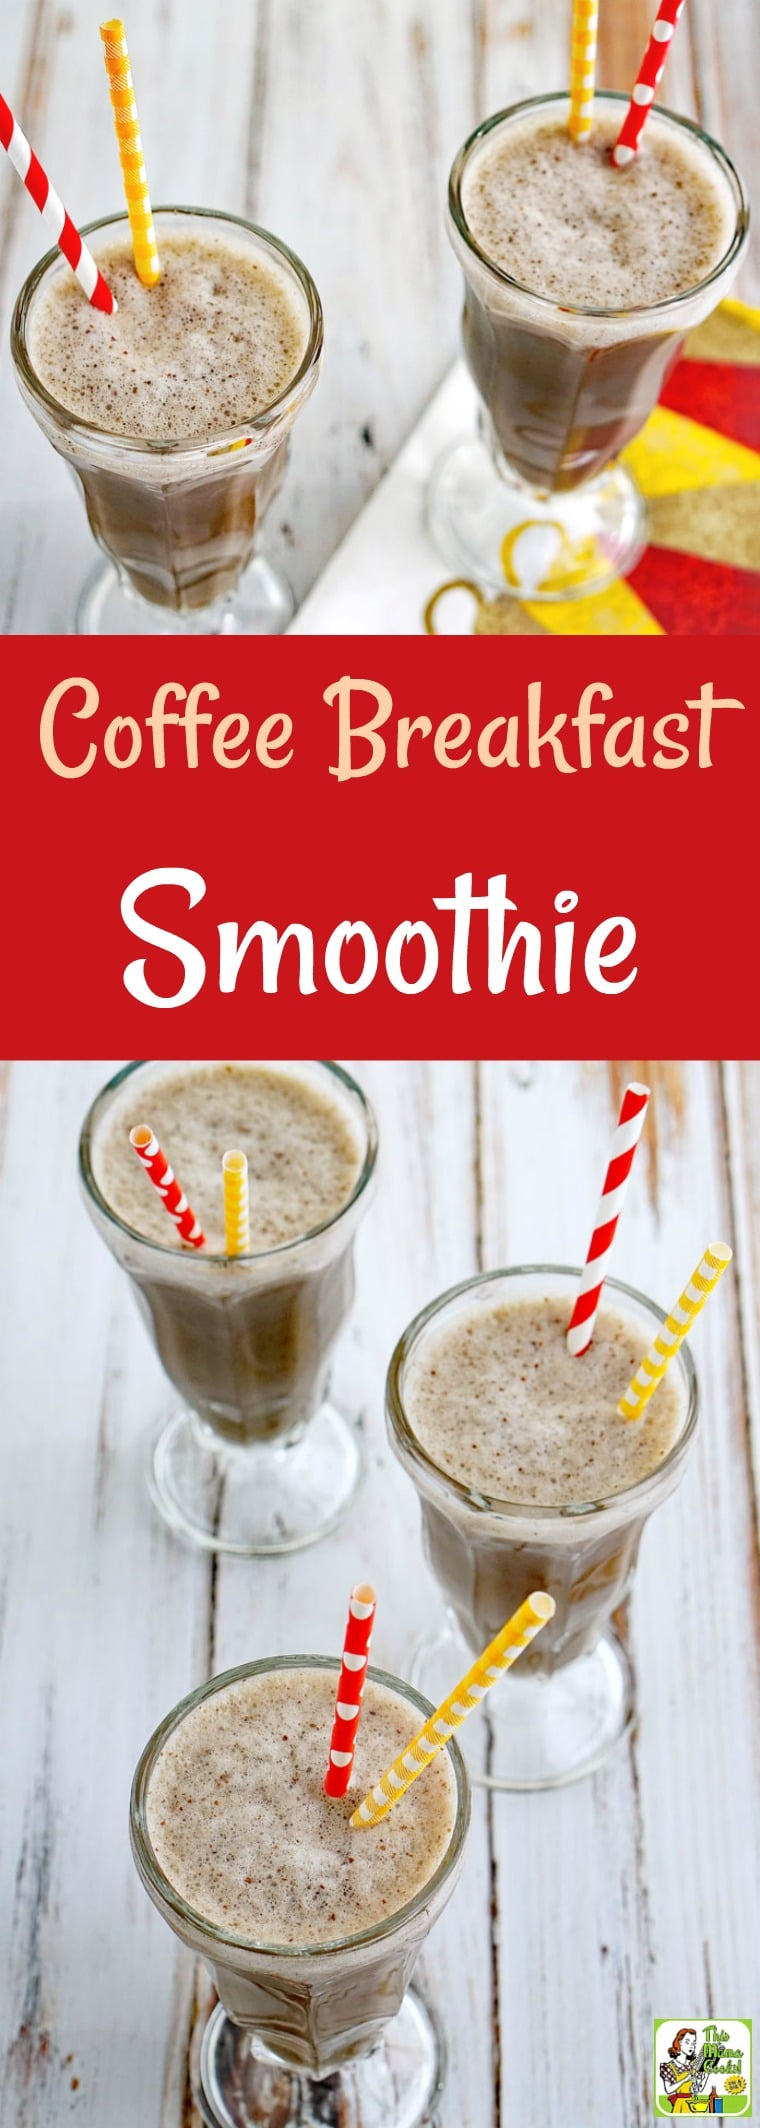 Try this Coffee Breakfast Smoothie recipe as an easy way to start your day with a boost of chocolate flavored coffee, almond milk, and cherries! This easy coffee smoothie recipe makes a healthy afternoon snack or post-workout drink. This coffee shake recipe is dairy free. #coffee #shake #drink #smoothie #dairyfree #almondmilk #cherries #healthydrink #lowcalorie #breakfast #icedcoffee #coffeesmoothie